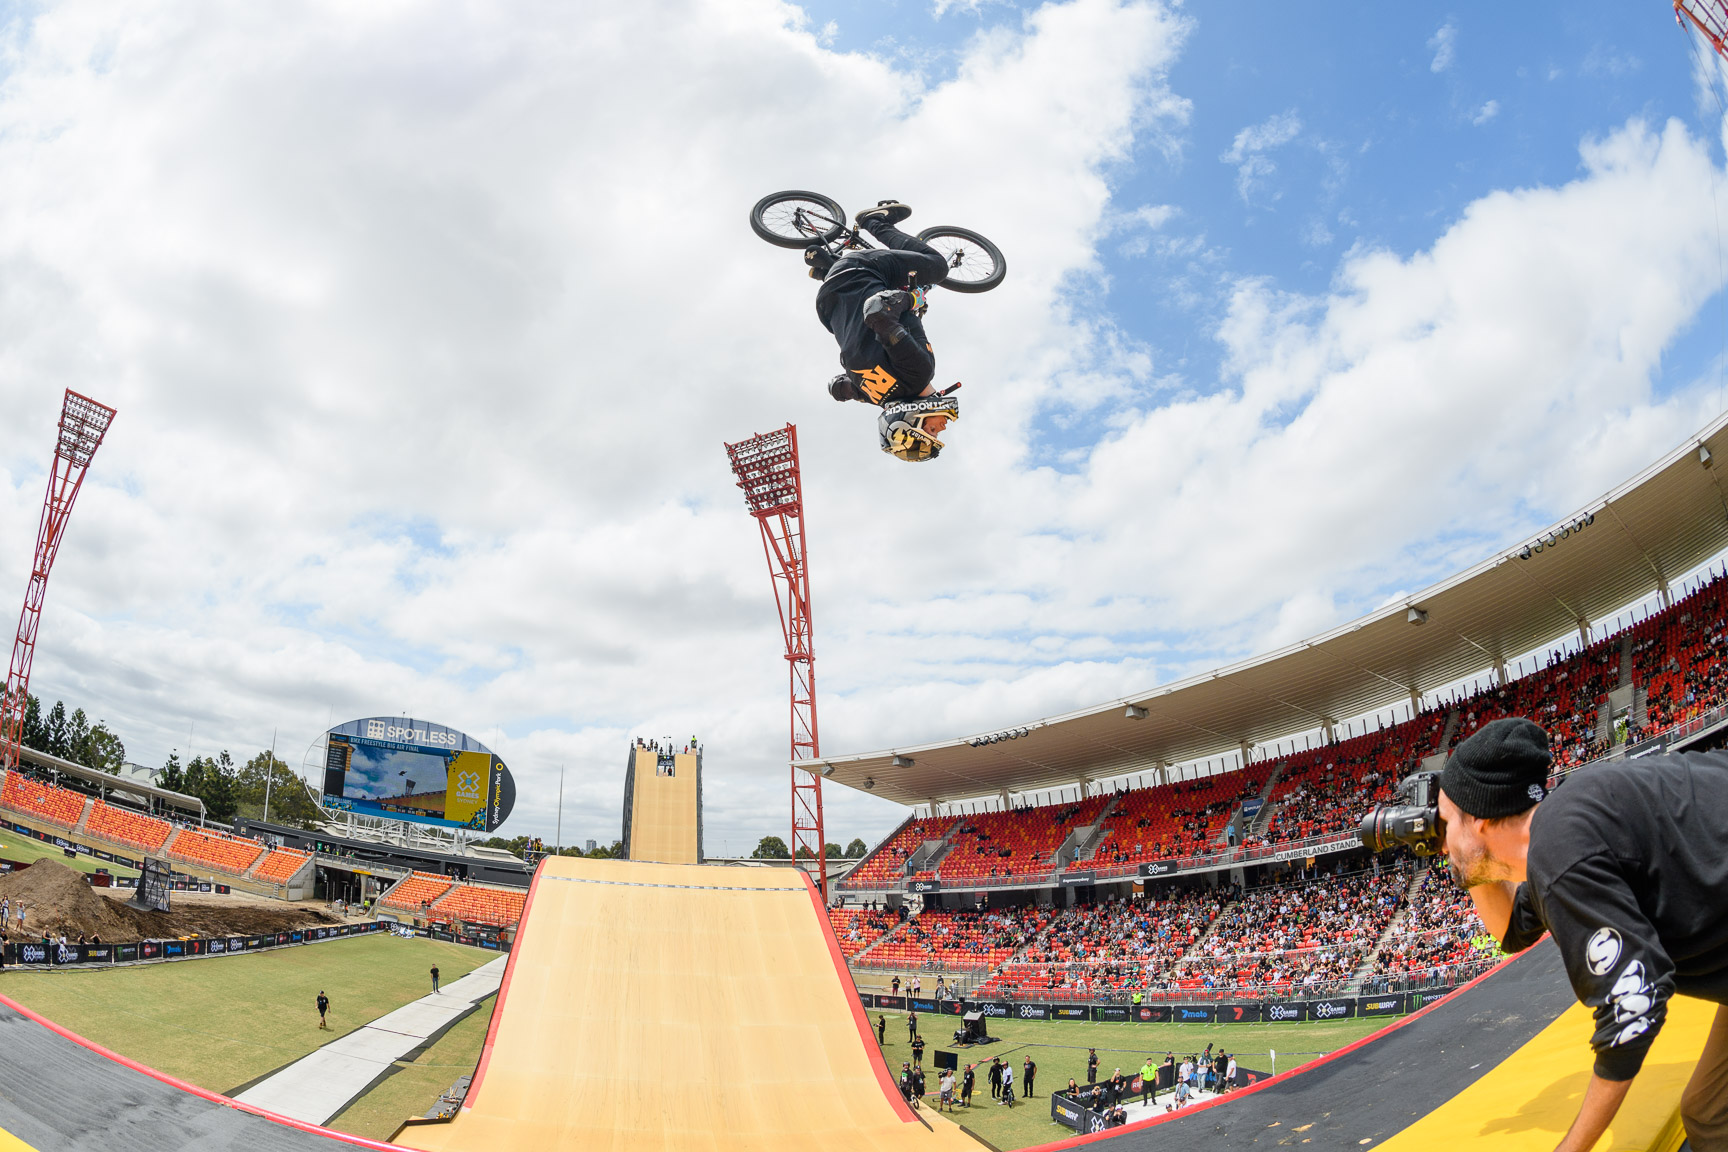 Ryan Williams, BMX Big Air